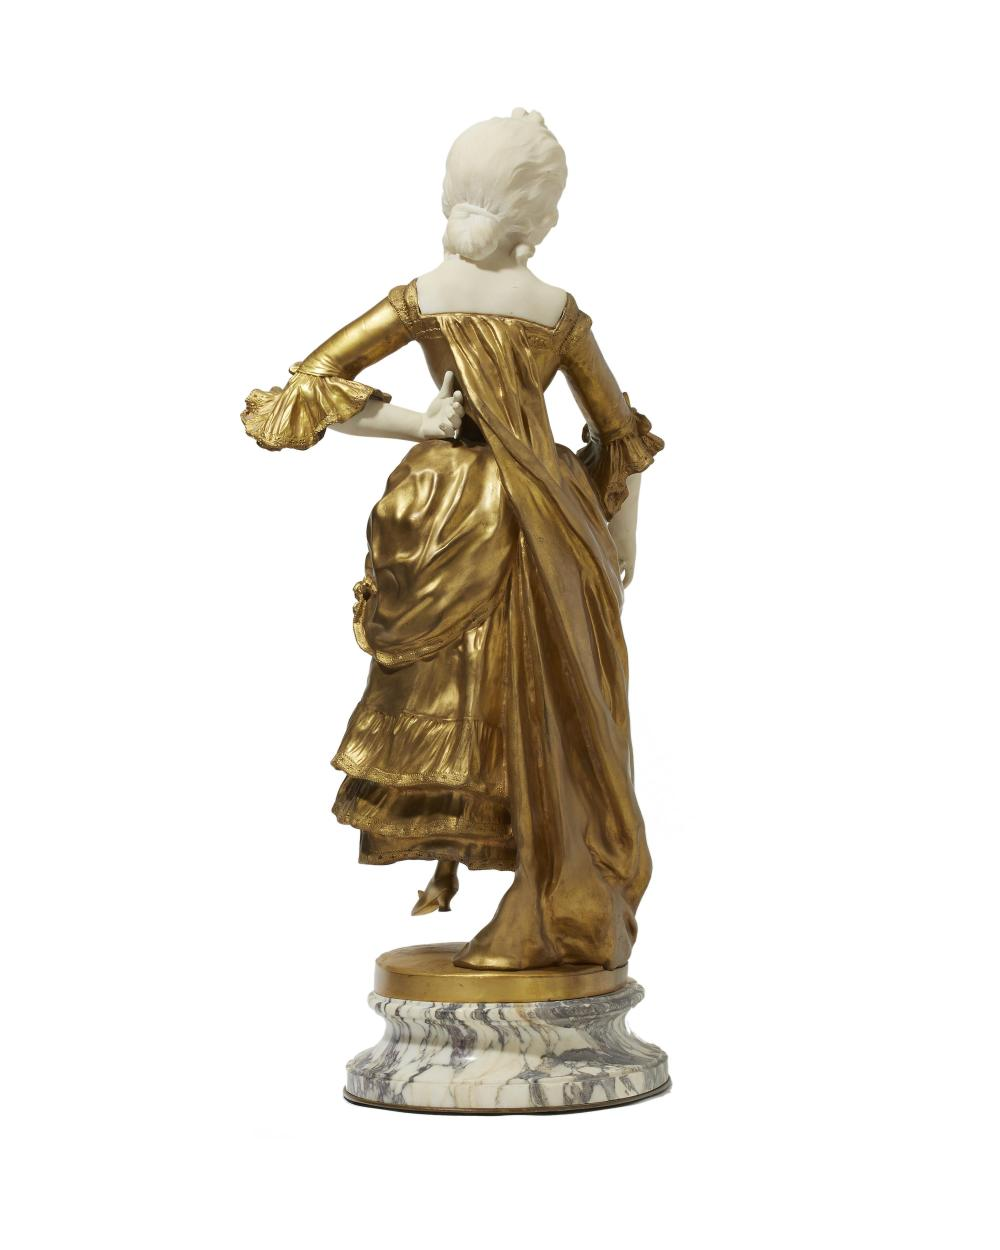 Affortunato (Fortunato) Gory, (1895-1925 Italian/French), Dancing 18th-century woman, Gilt-bronze and alabaster on marble plinth, 28